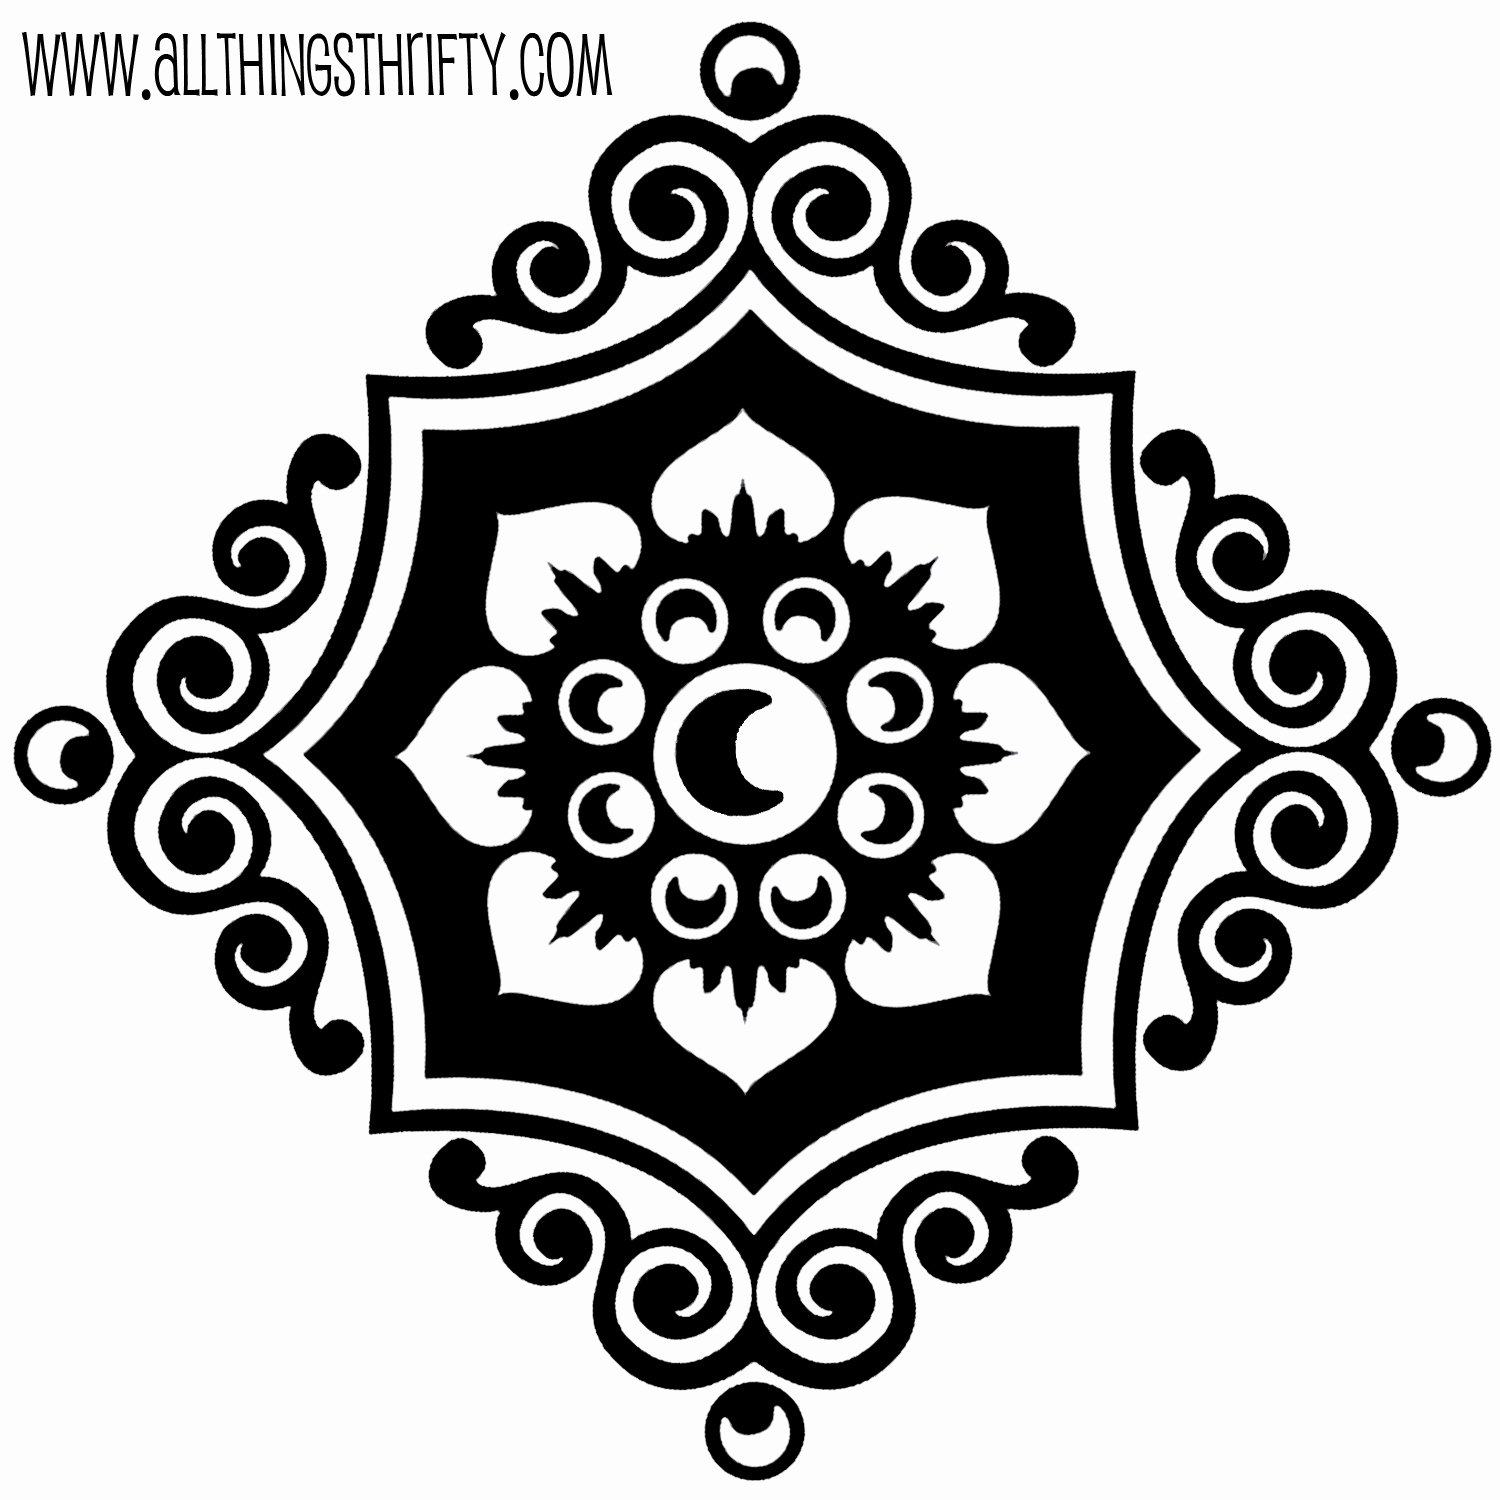 Printable Stencils for Painting Lovely Stencil Patterns Just for You